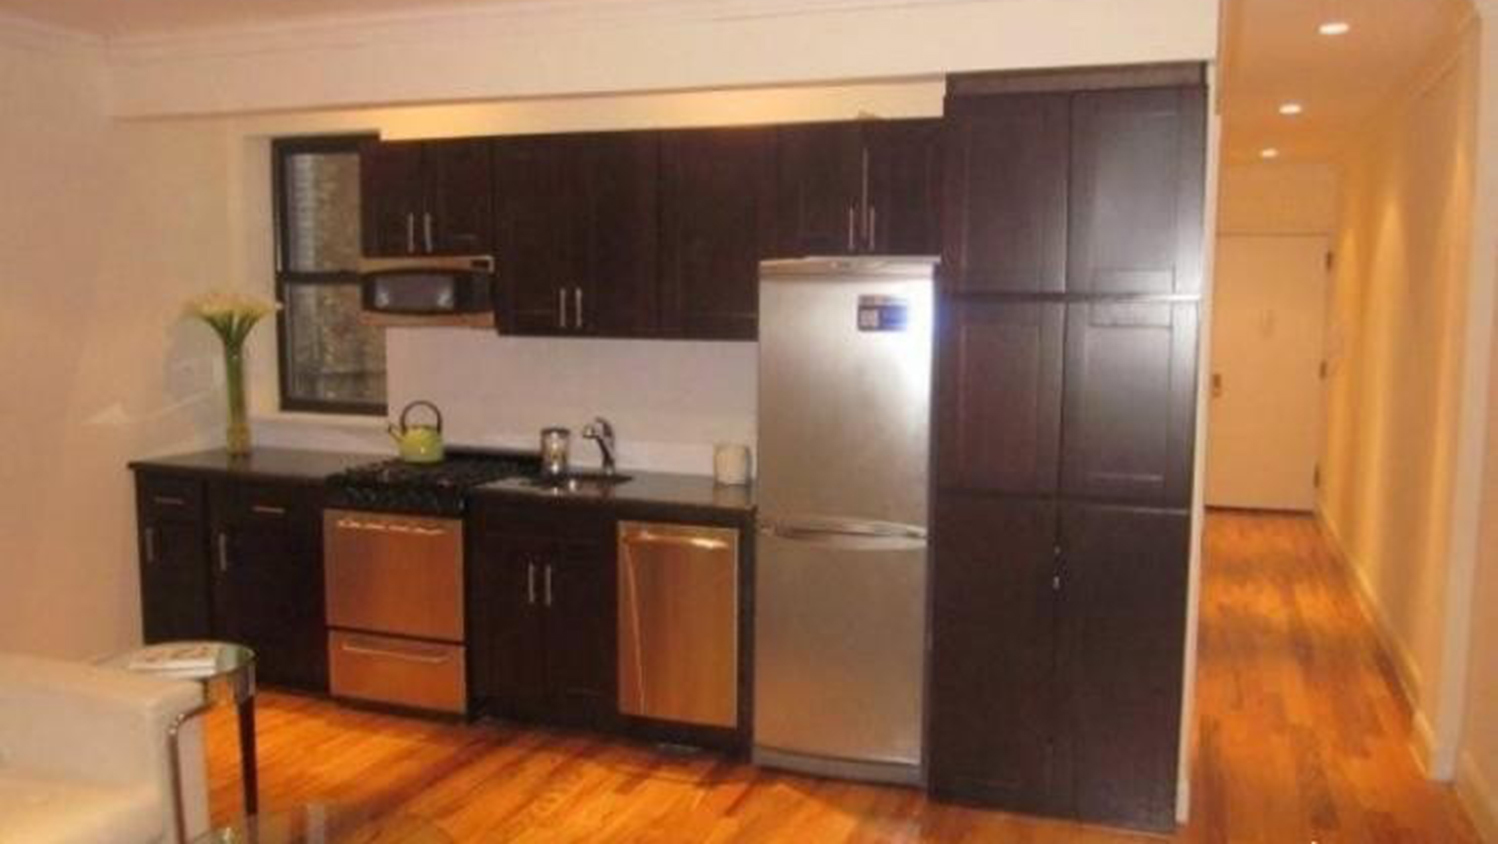 Affordable apartments, week of January 27, Gramercy 1